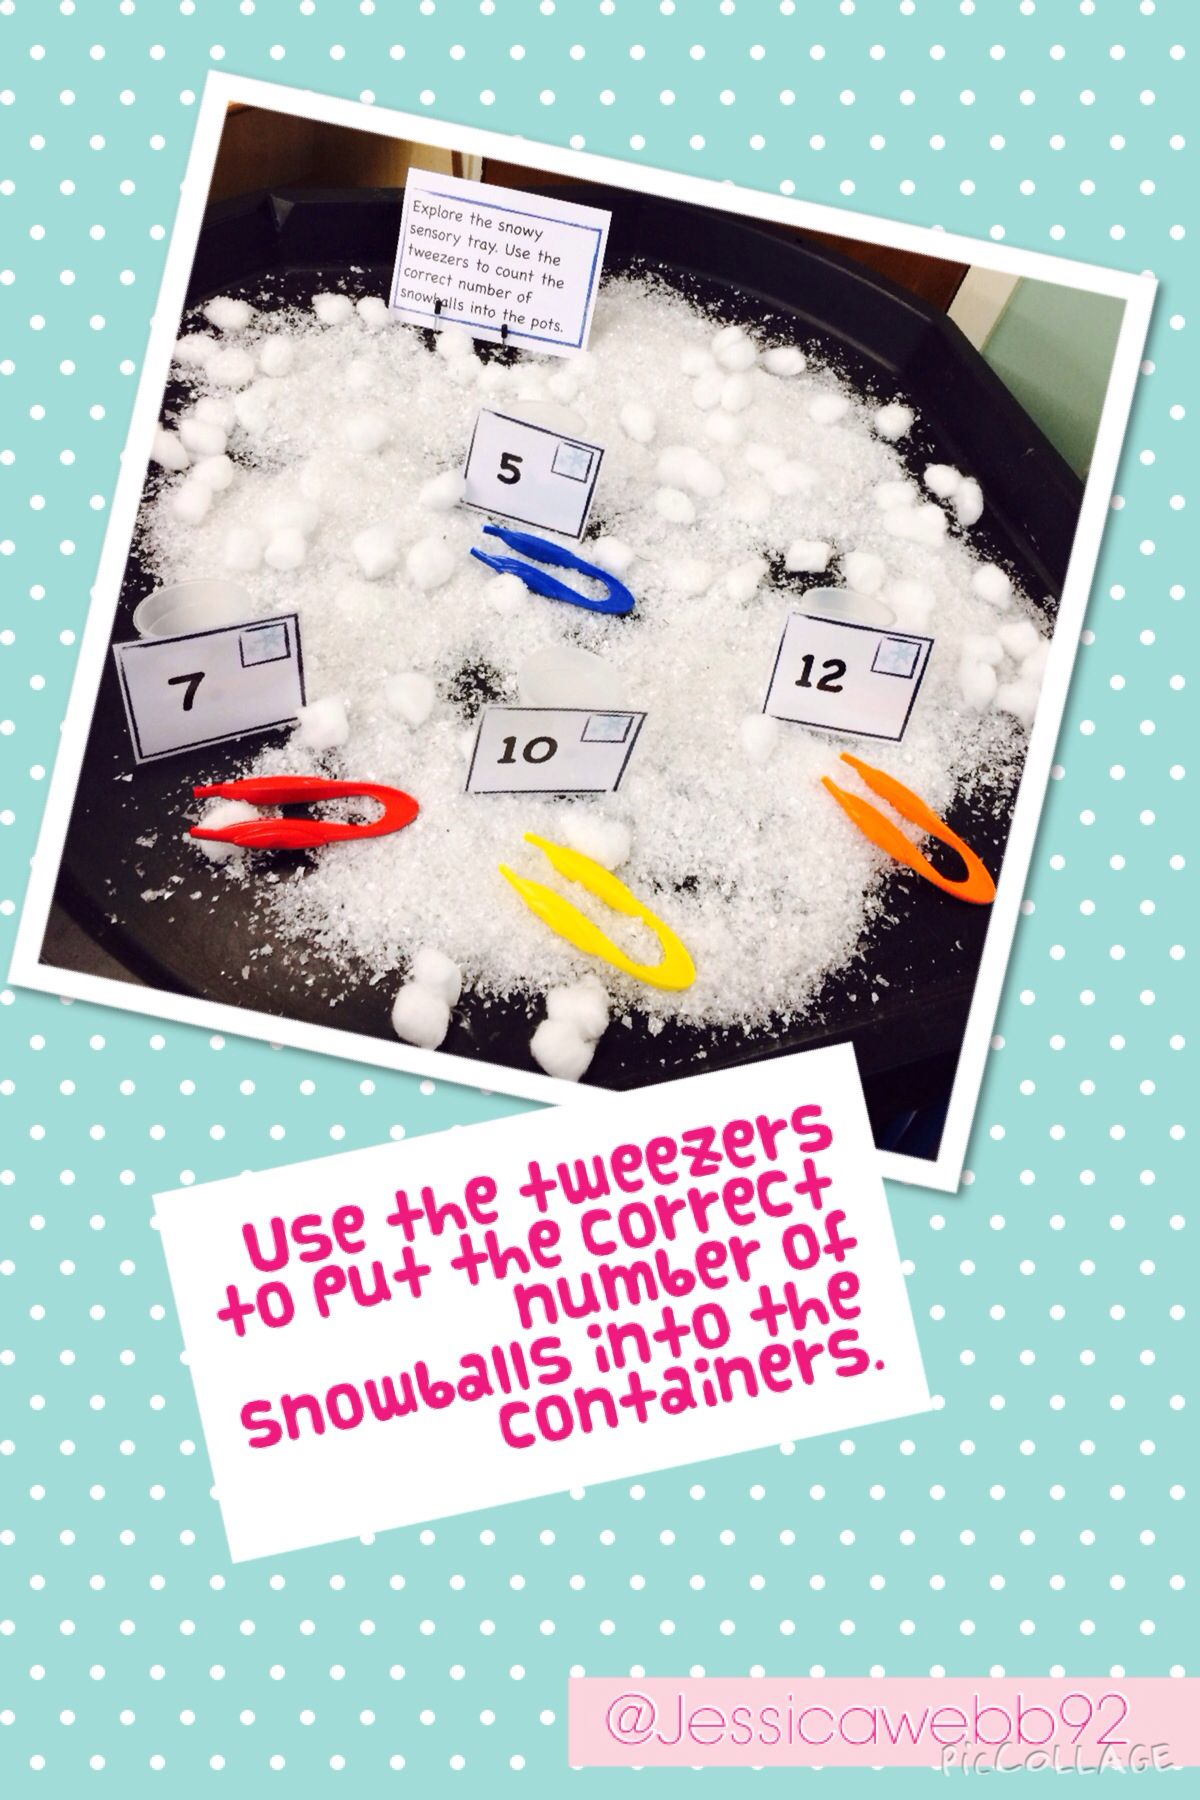 Using Tweezers To Count The Correct Number Of A Snowballs